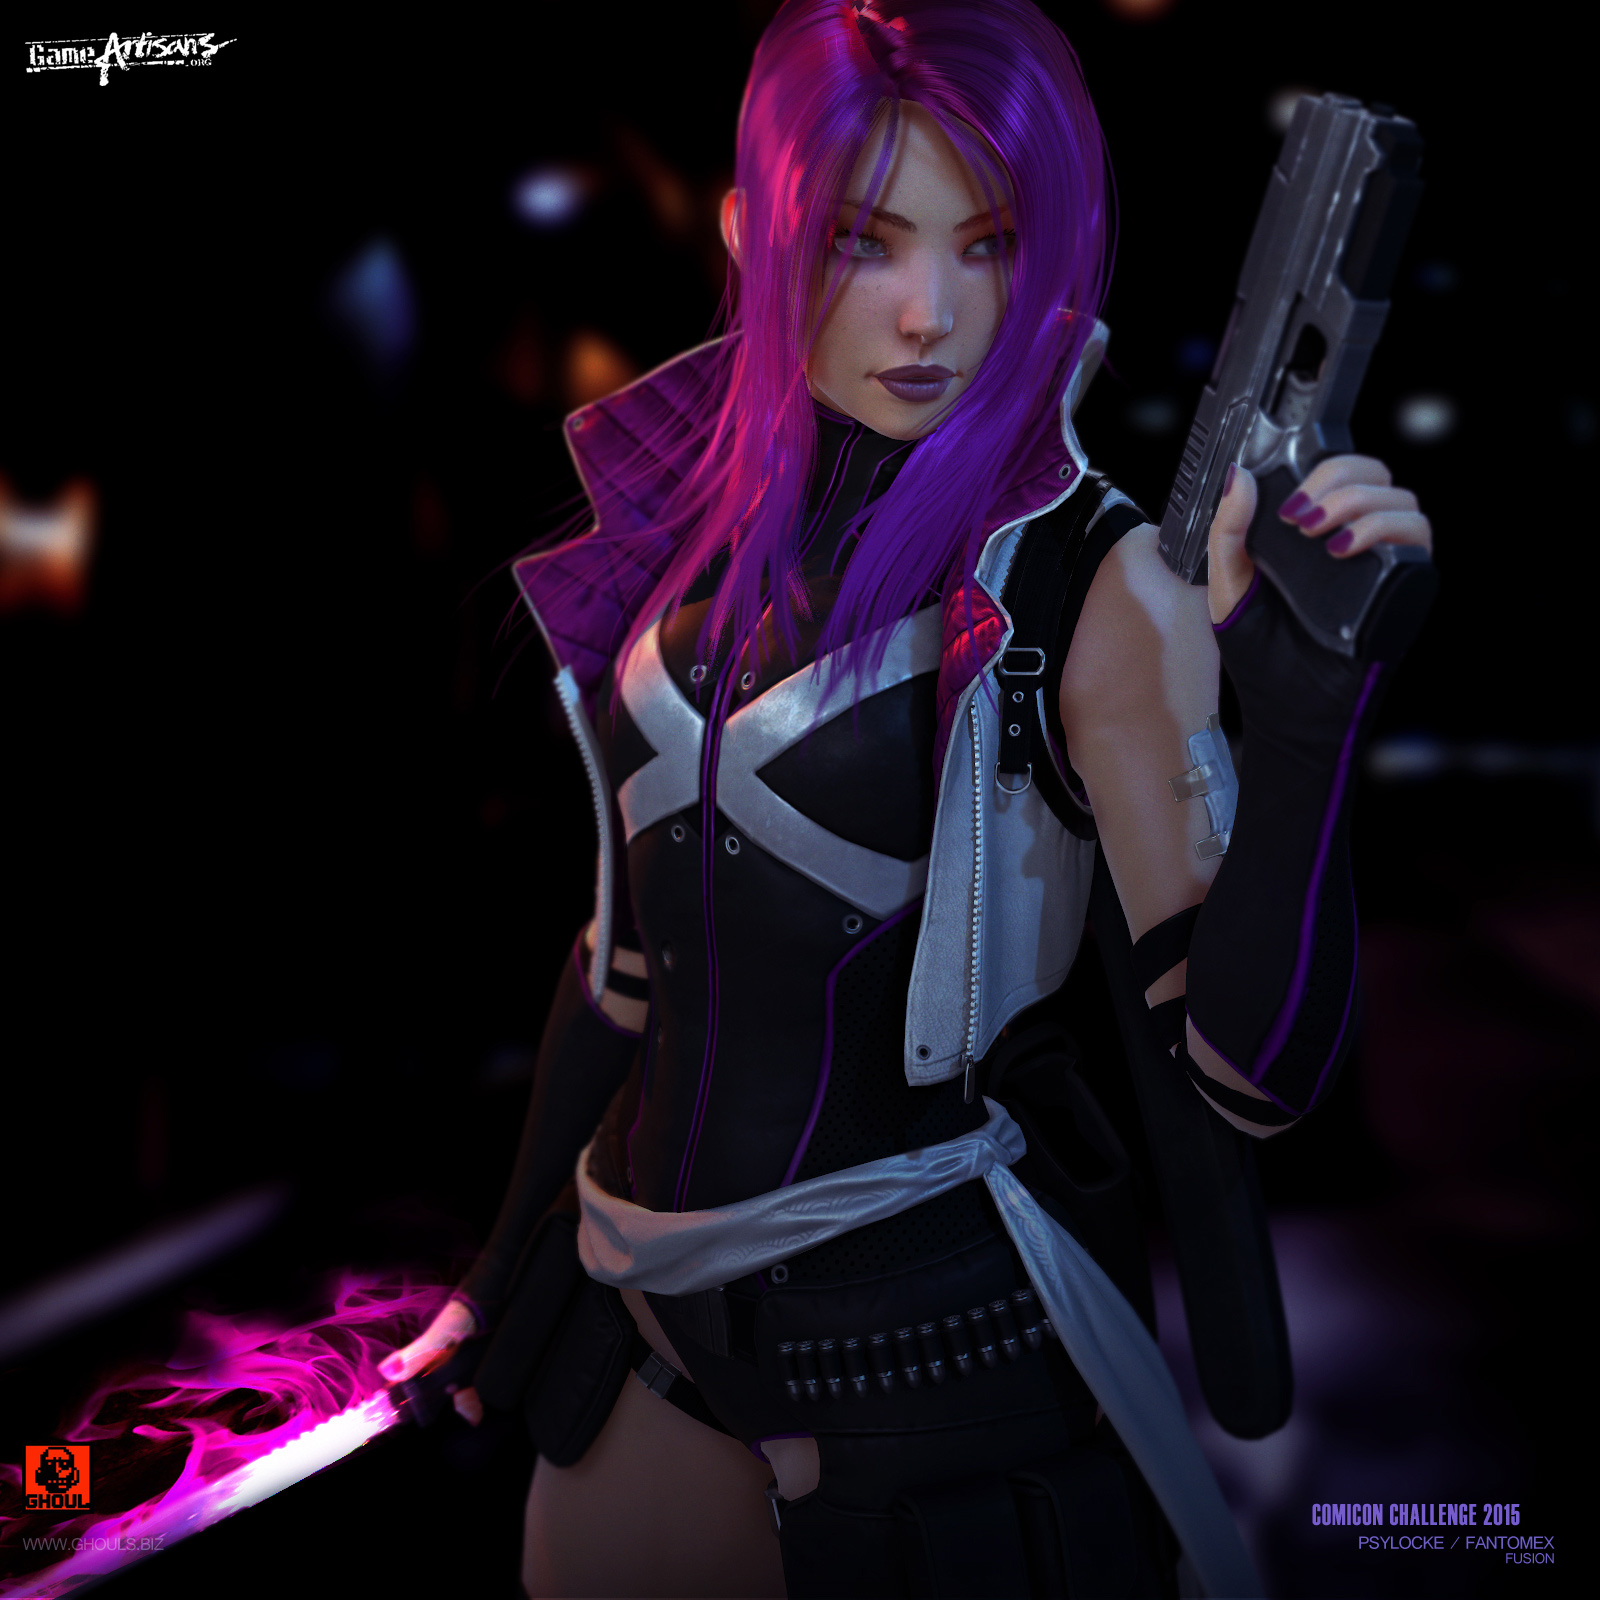 psylocke_beauty_shot_by_ghoulbiz-d8ozxts.jpg